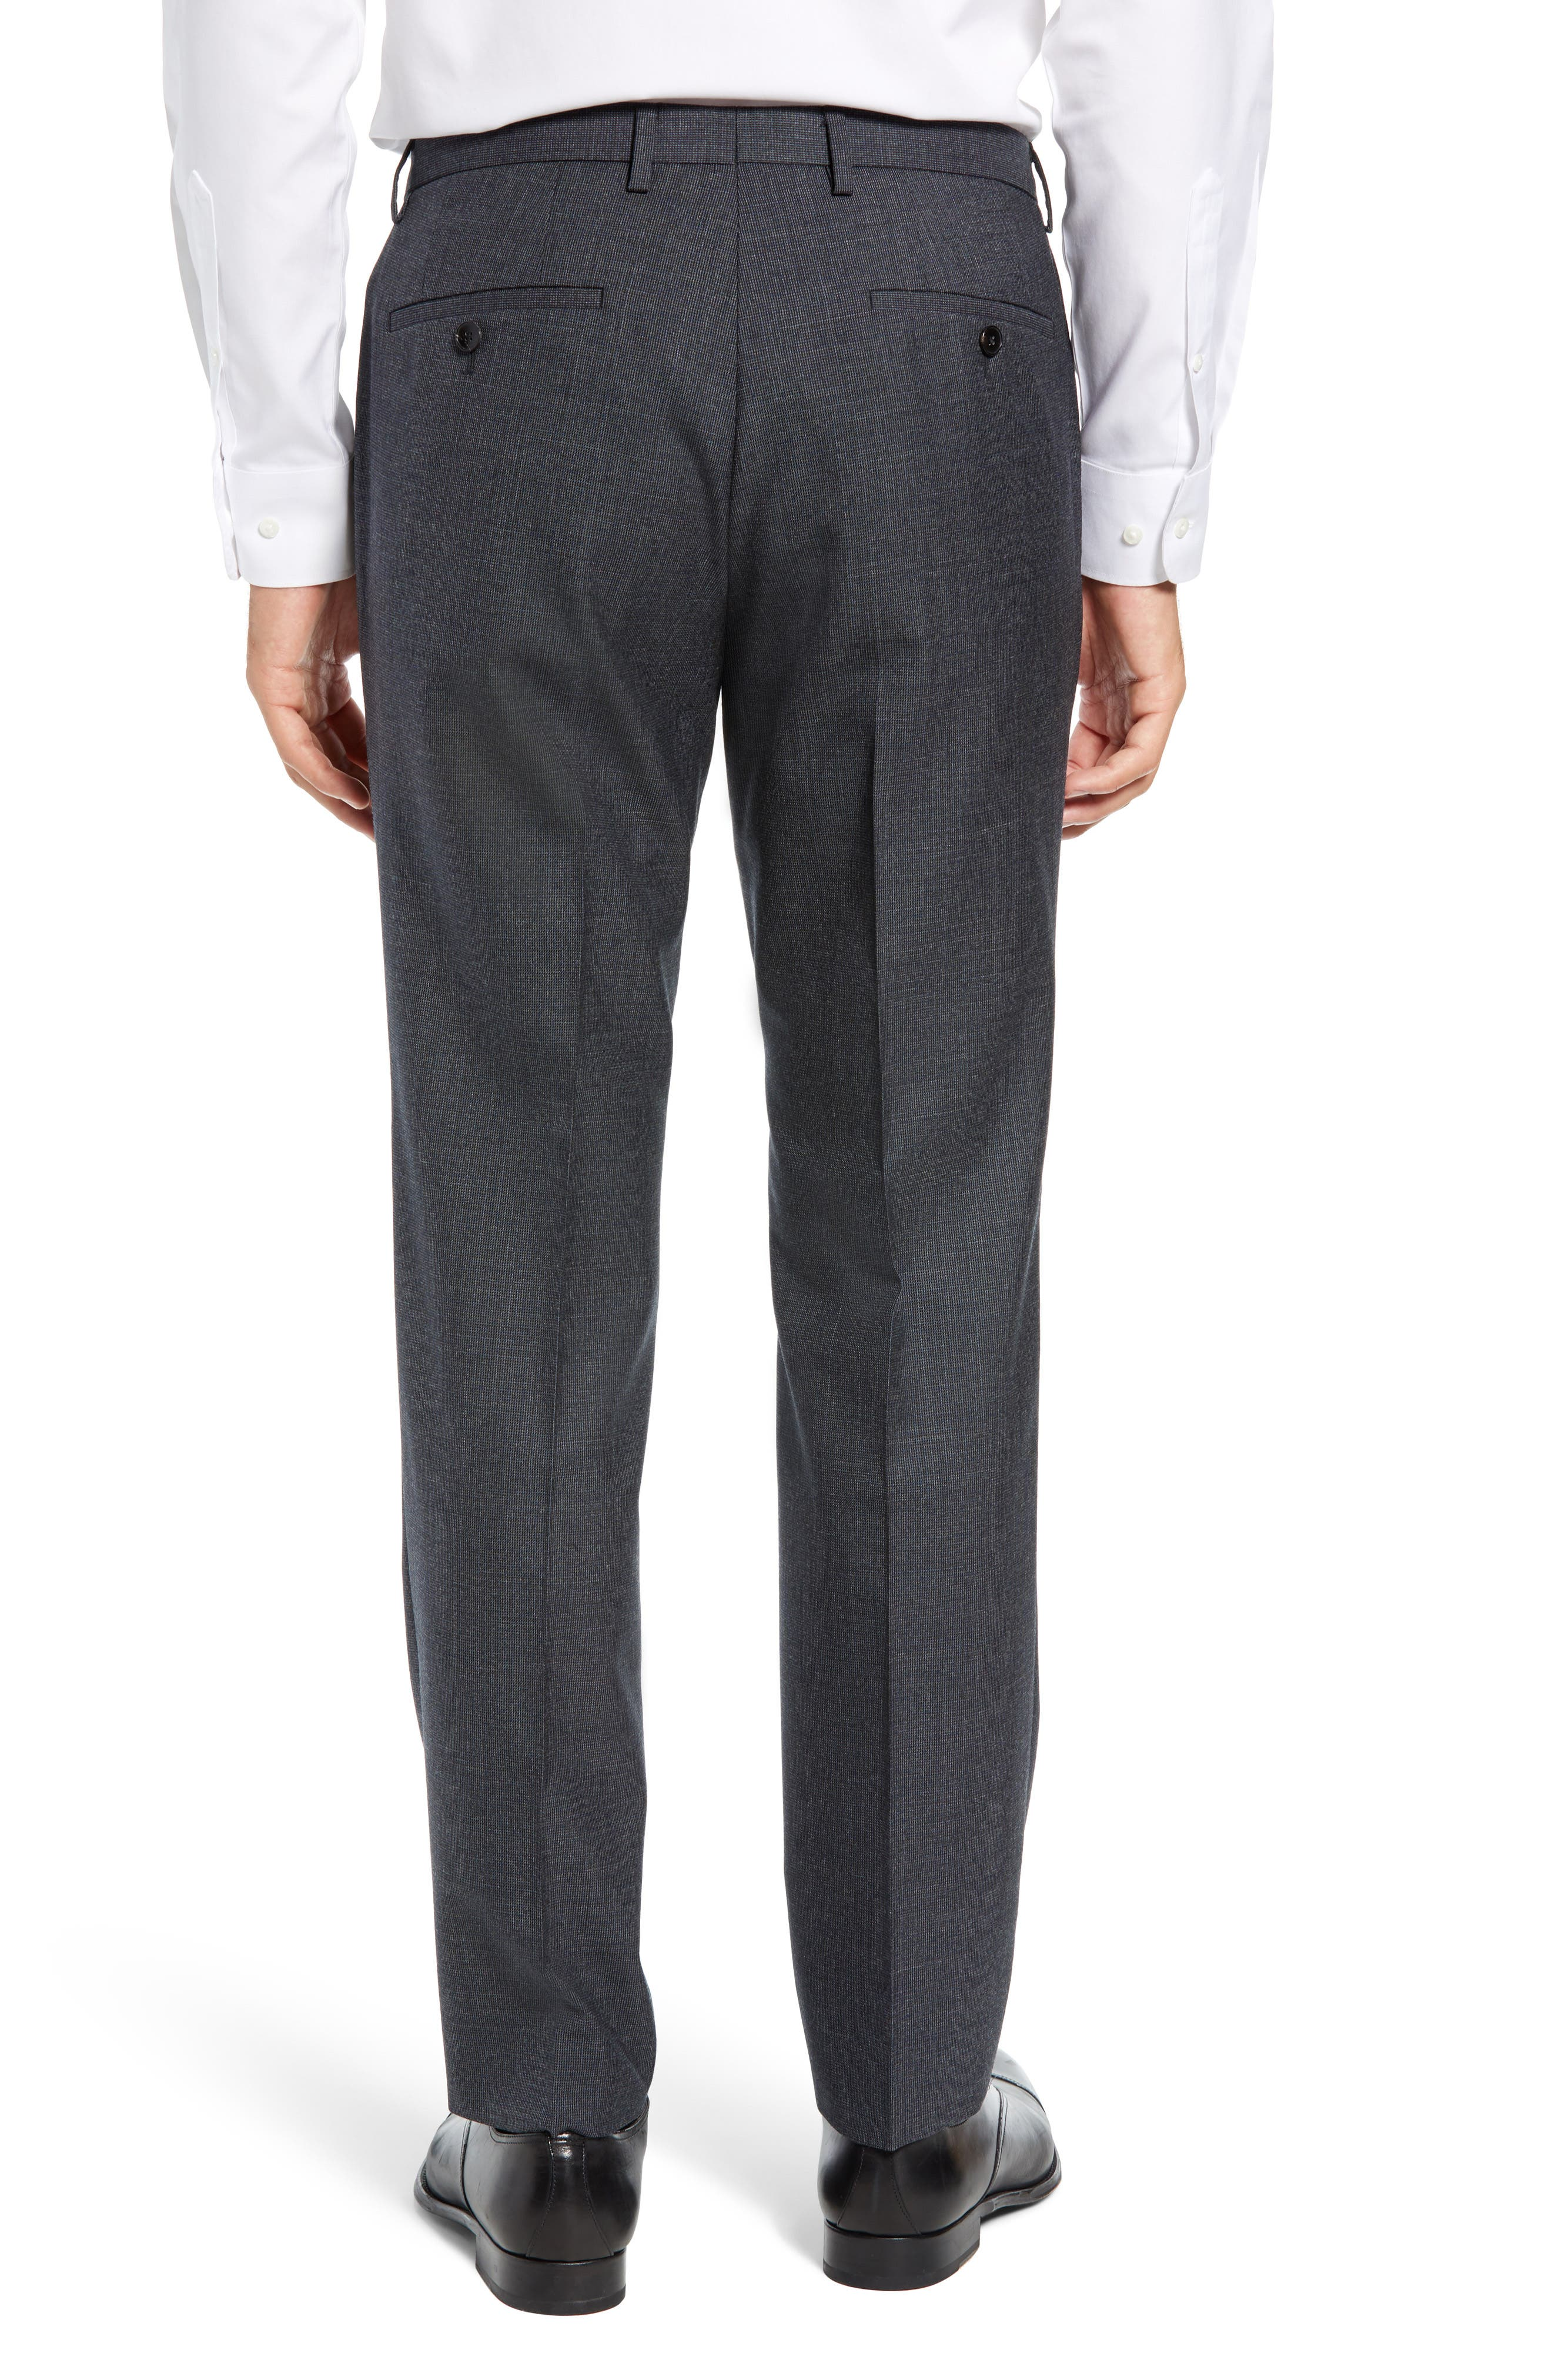 Leenon Flat Front Solid Wool Trousers,                             Alternate thumbnail 2, color,                             OPEN BLUE